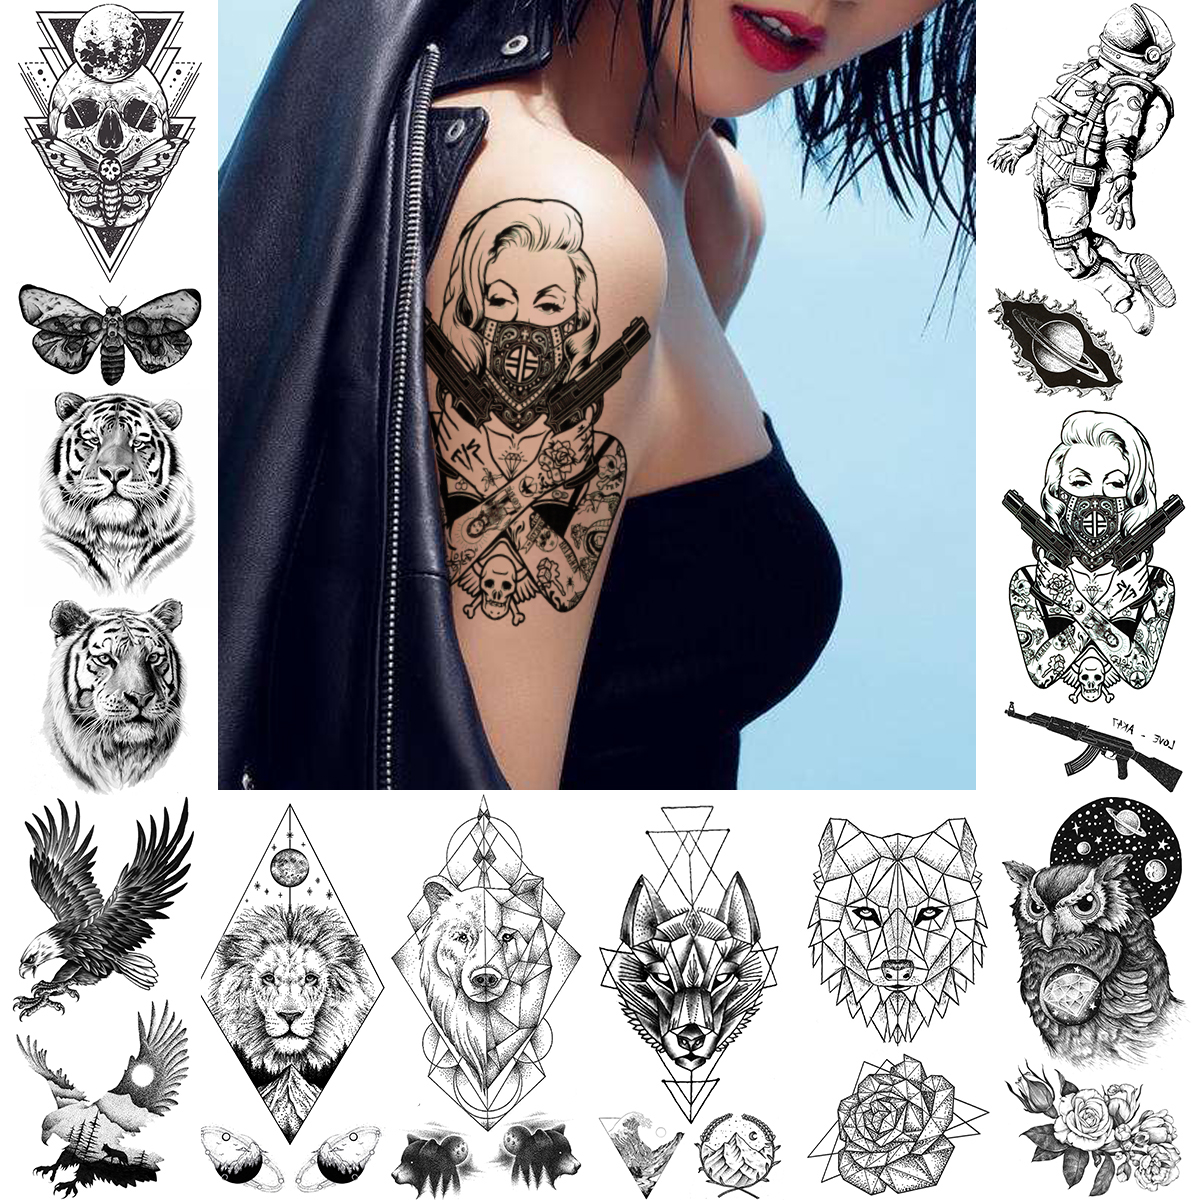 Rebellious Mask Women Temporary Tattoo For Adults Gun Gangster Warrior Tatoo Paper Realistic Black Fake Skull Owl Tattoo Sitcker